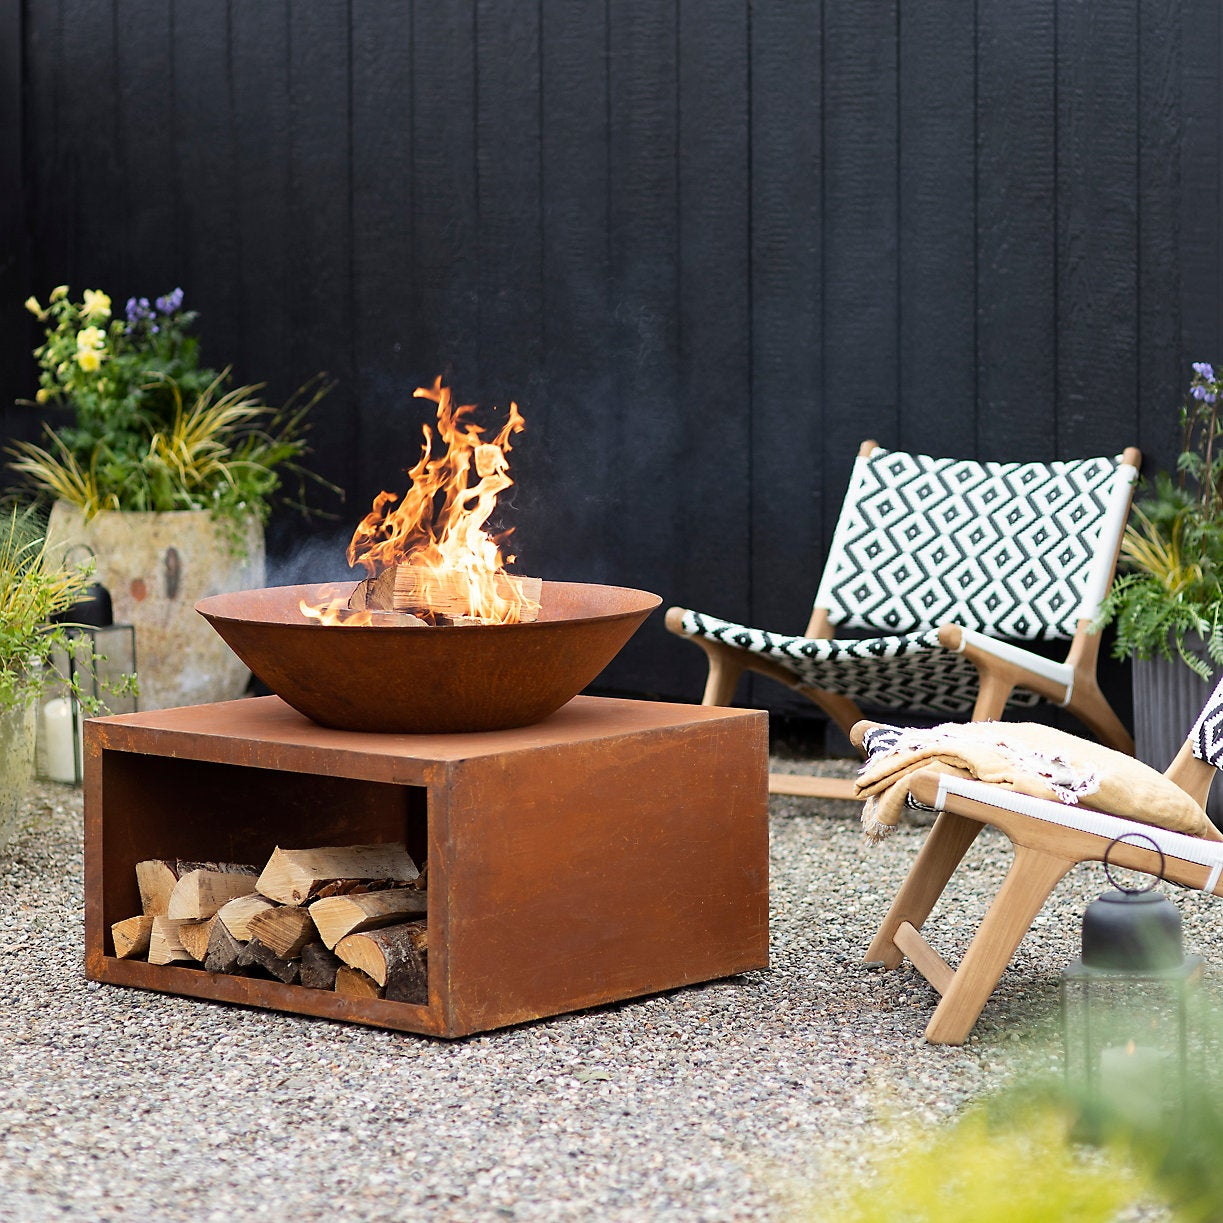 The 5 Outdoor Decor Trends You'll See at Every Barbecue This Summer